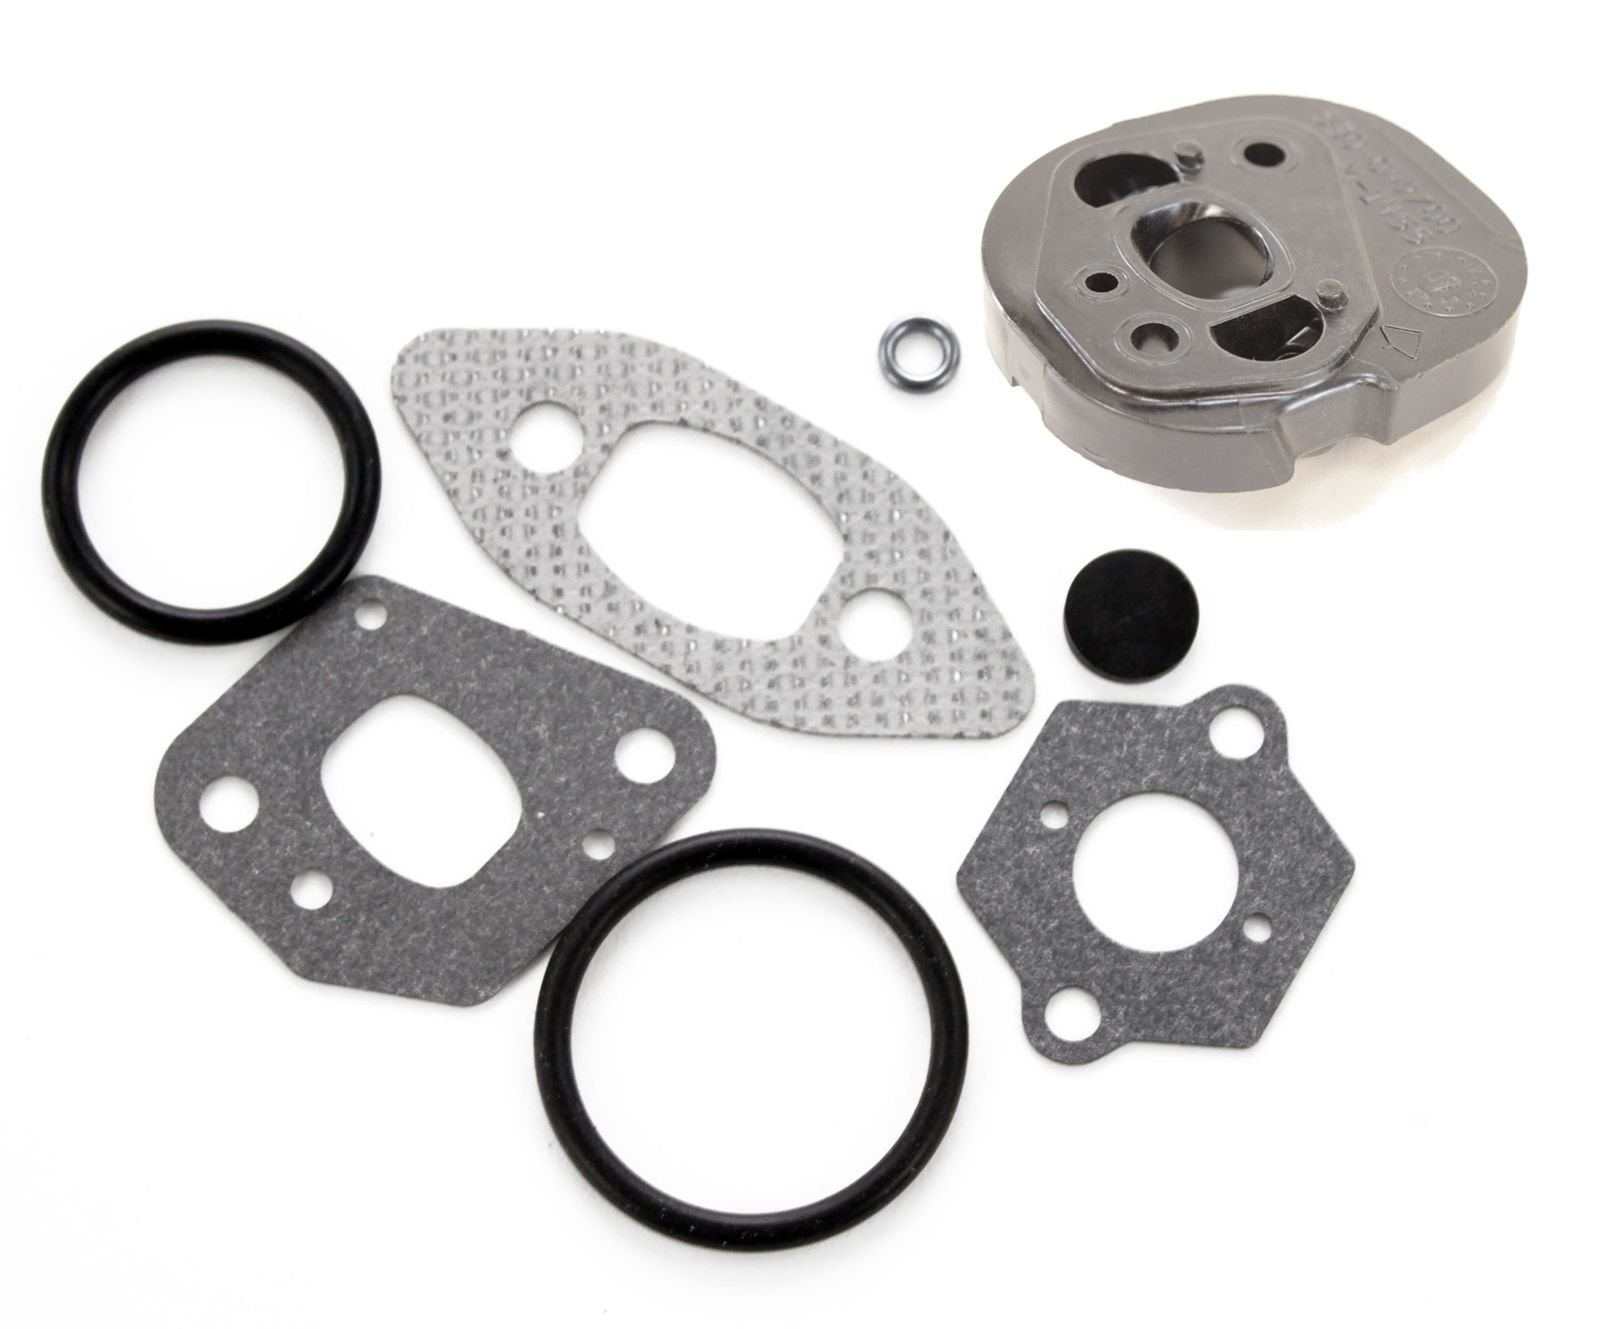 KHY 530069608, 530049700, 530-049700 Poulan Gasket SET Carb Adapter Spacer FOR Poulan, Craftsman, and Snapper chainsaws by KHY